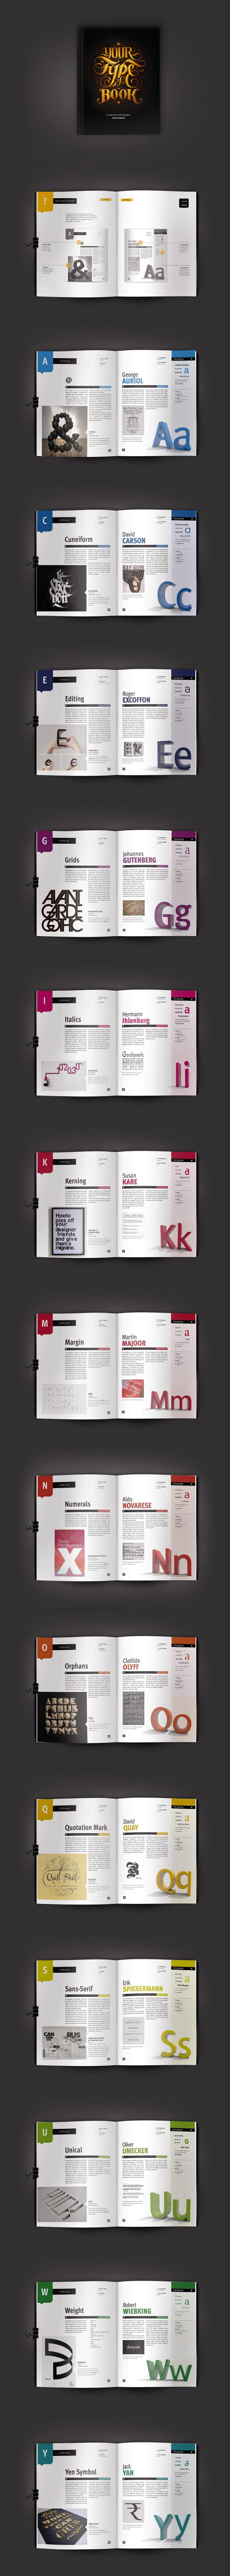 Your Type of Book by Aurelie Maron, via Behance